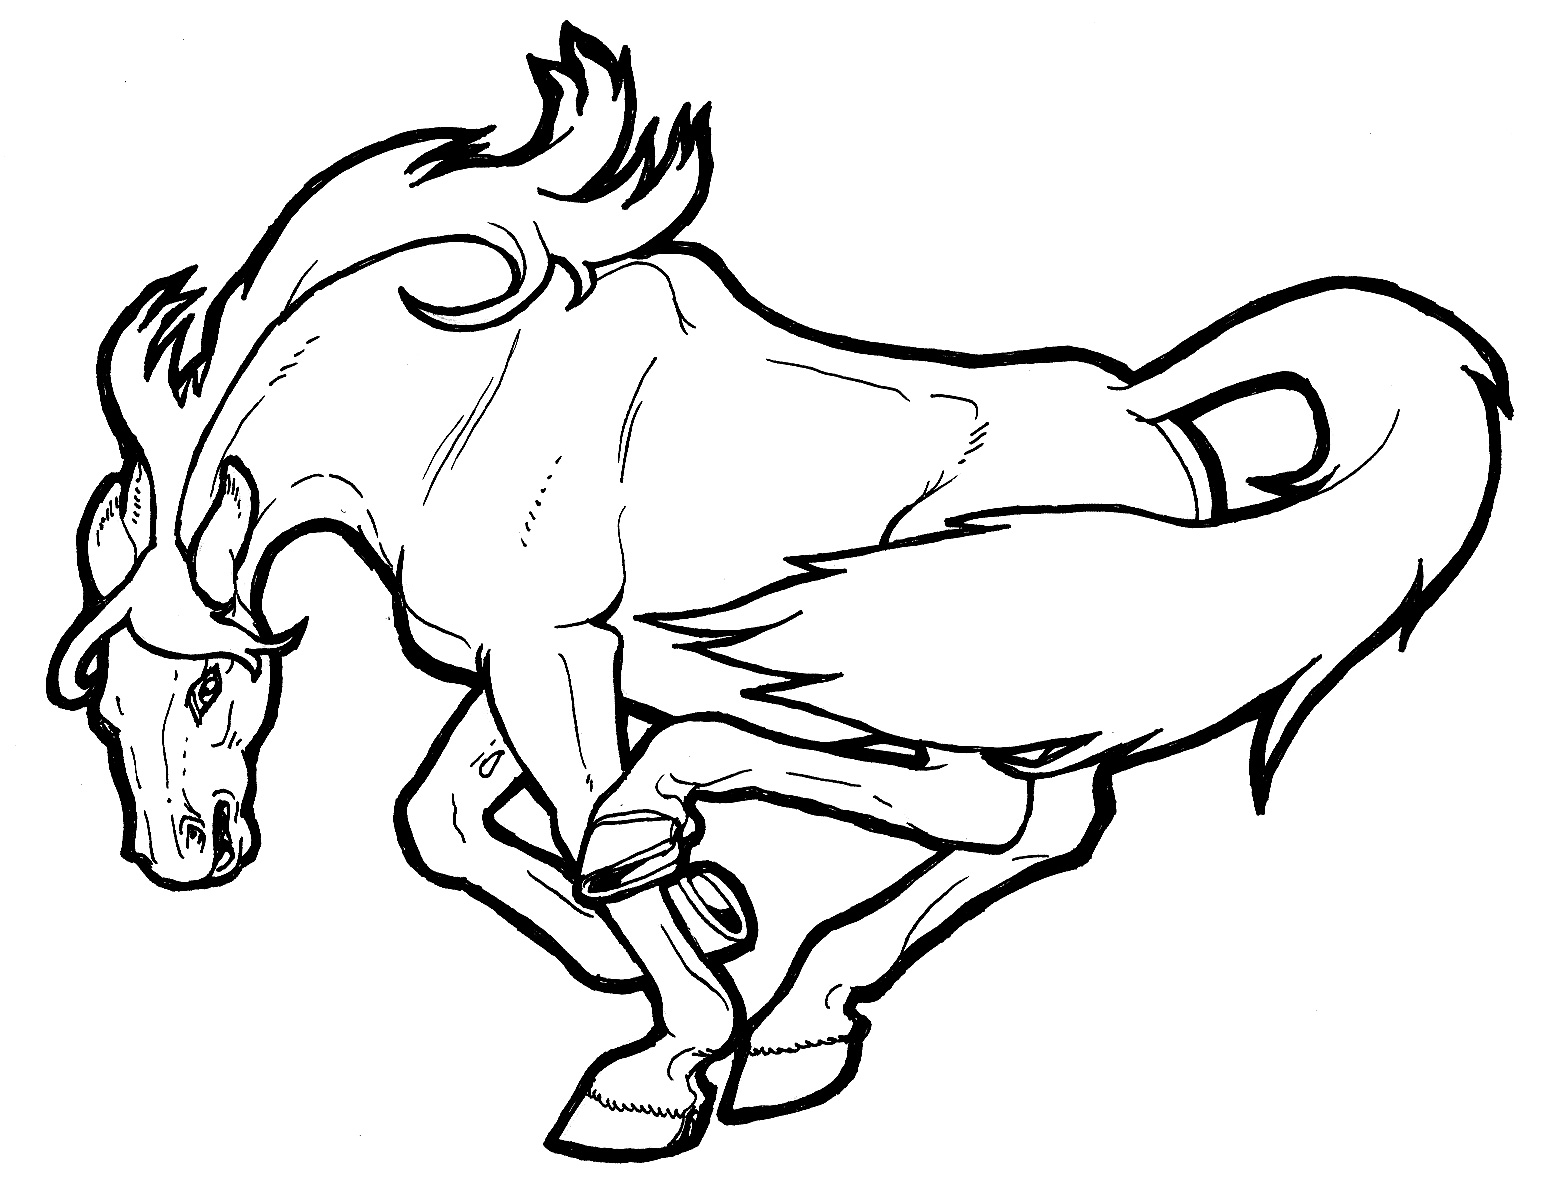 Coloring Book and Pages Tremendous Horse Coloring Page to Print Of Sturdy Coloring Page A Horse Pages Horses R 3353 Unknown Download